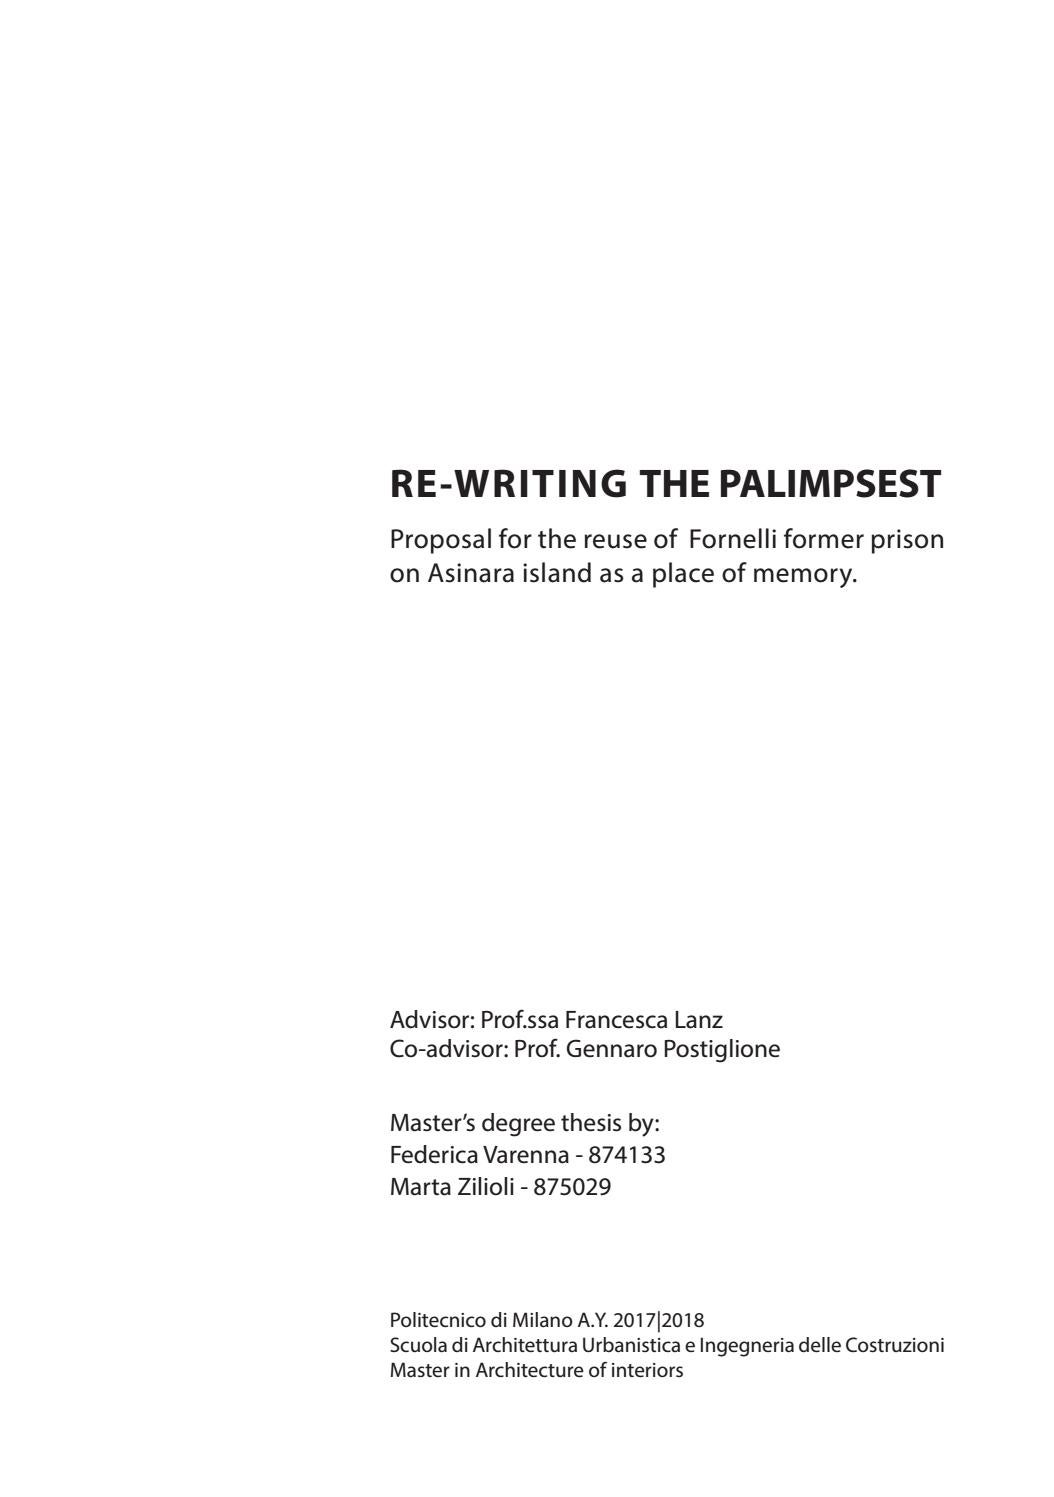 Il Parco Delle Camerette re-writing the palimpsest. i overview by federica varenna